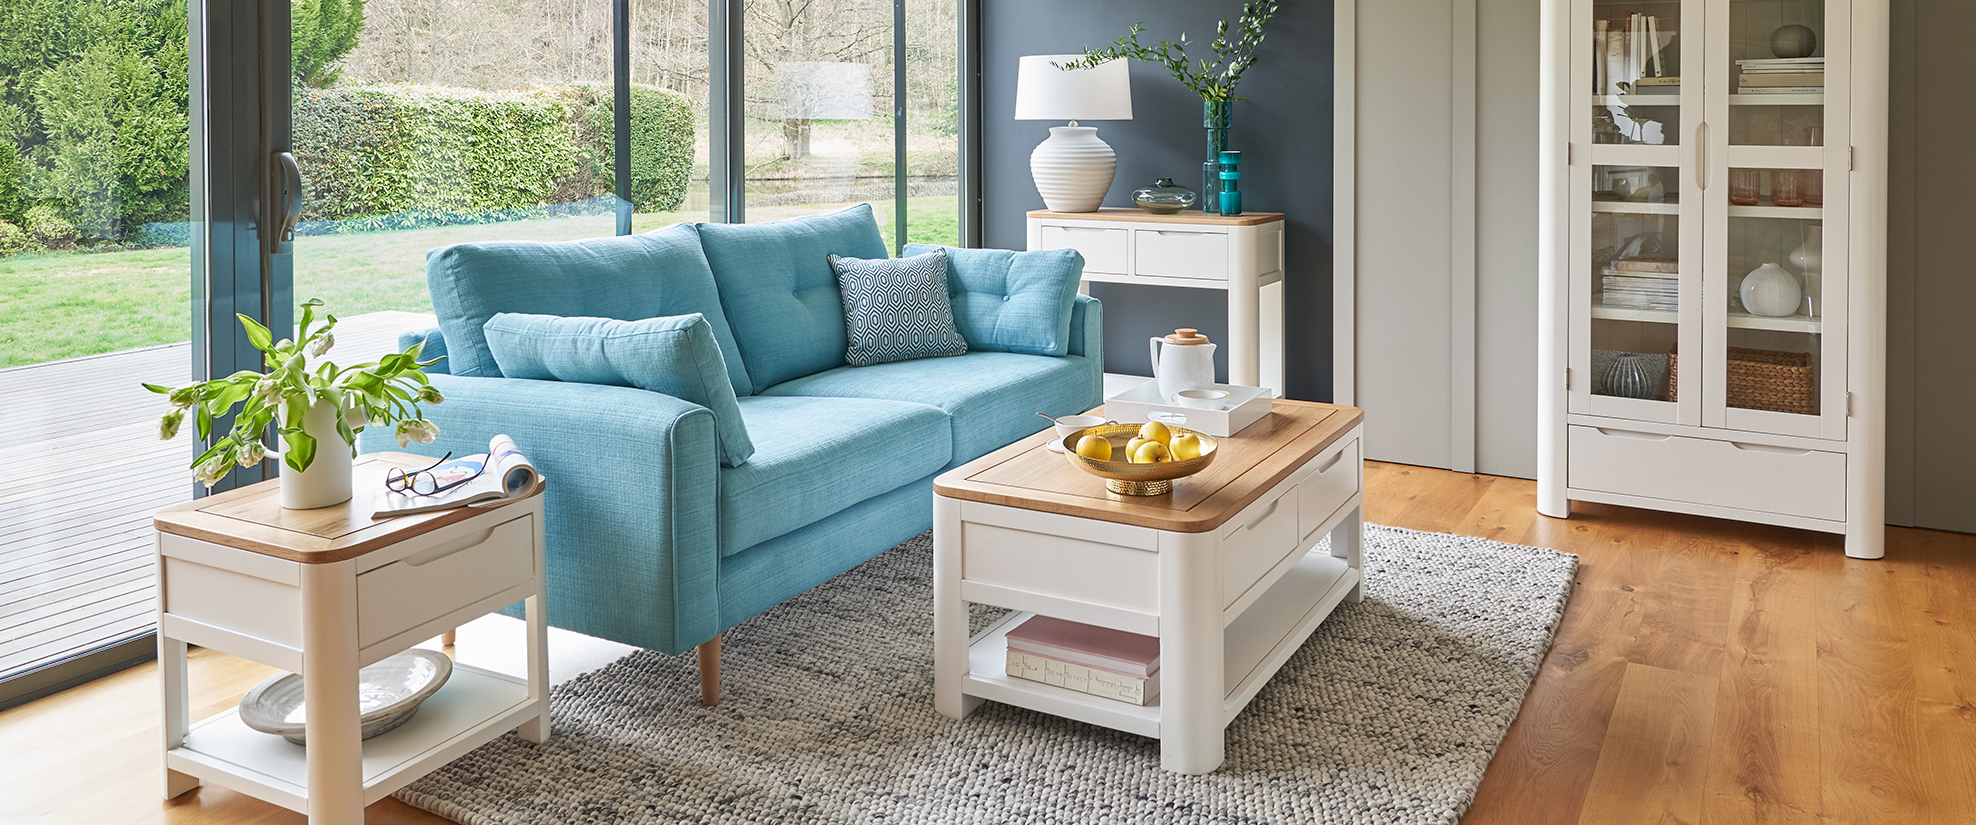 Introducing Brighton And Hove By Oak Furnitureland - Fashion Trendsetter